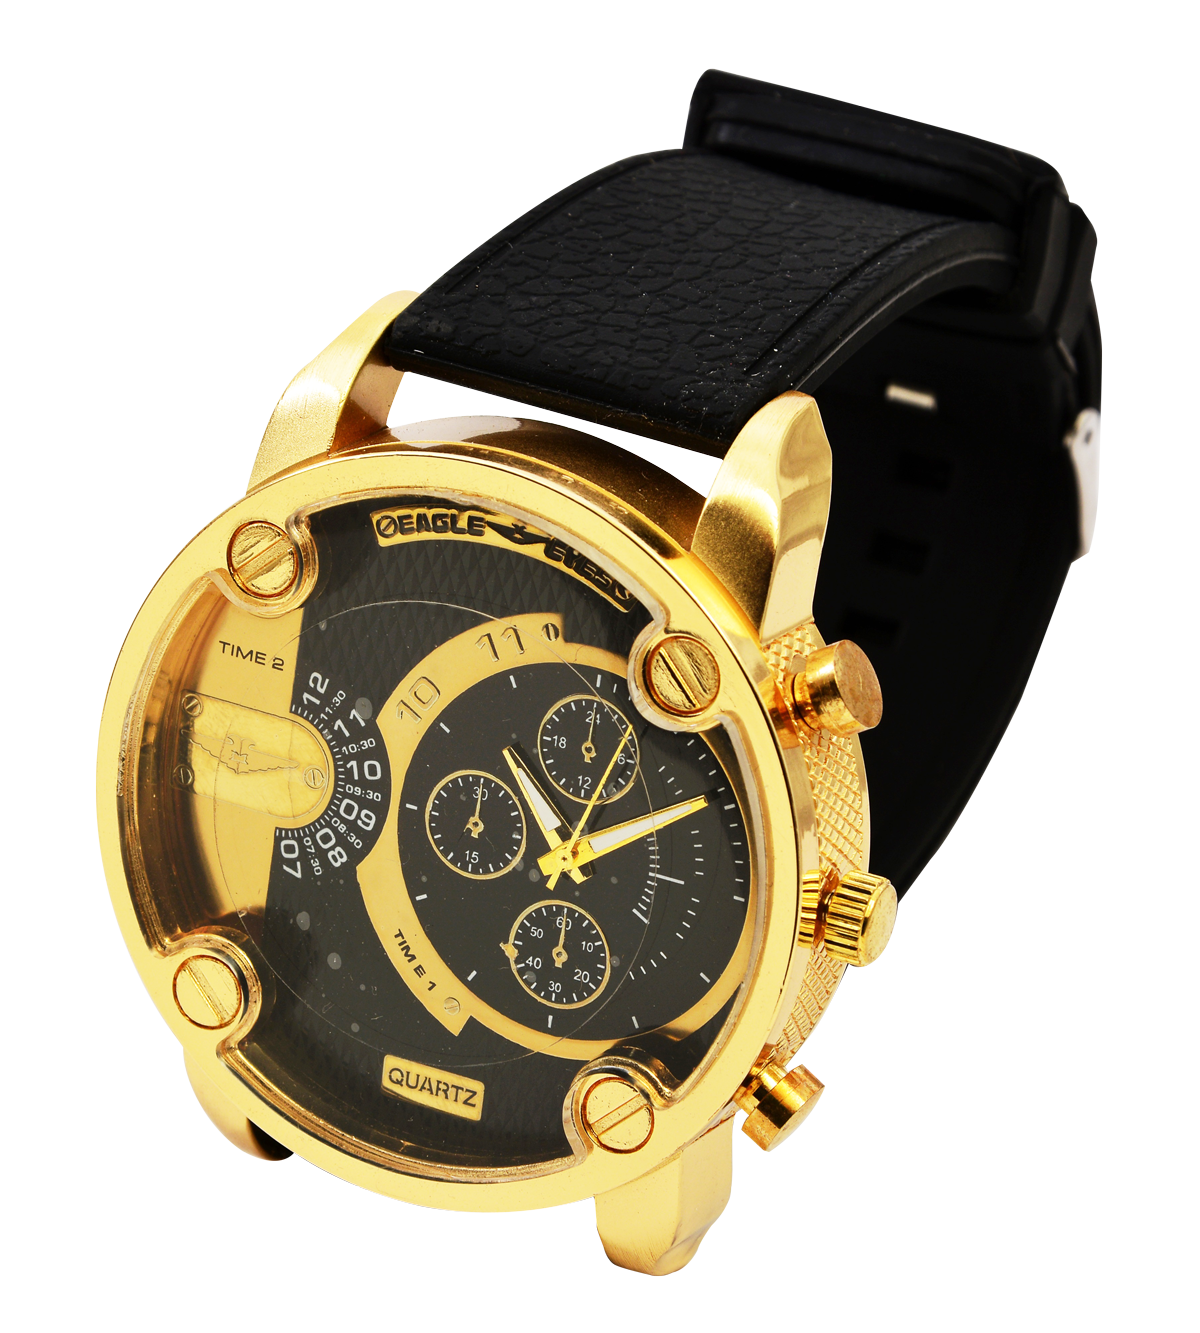 Watch PNG - 10841